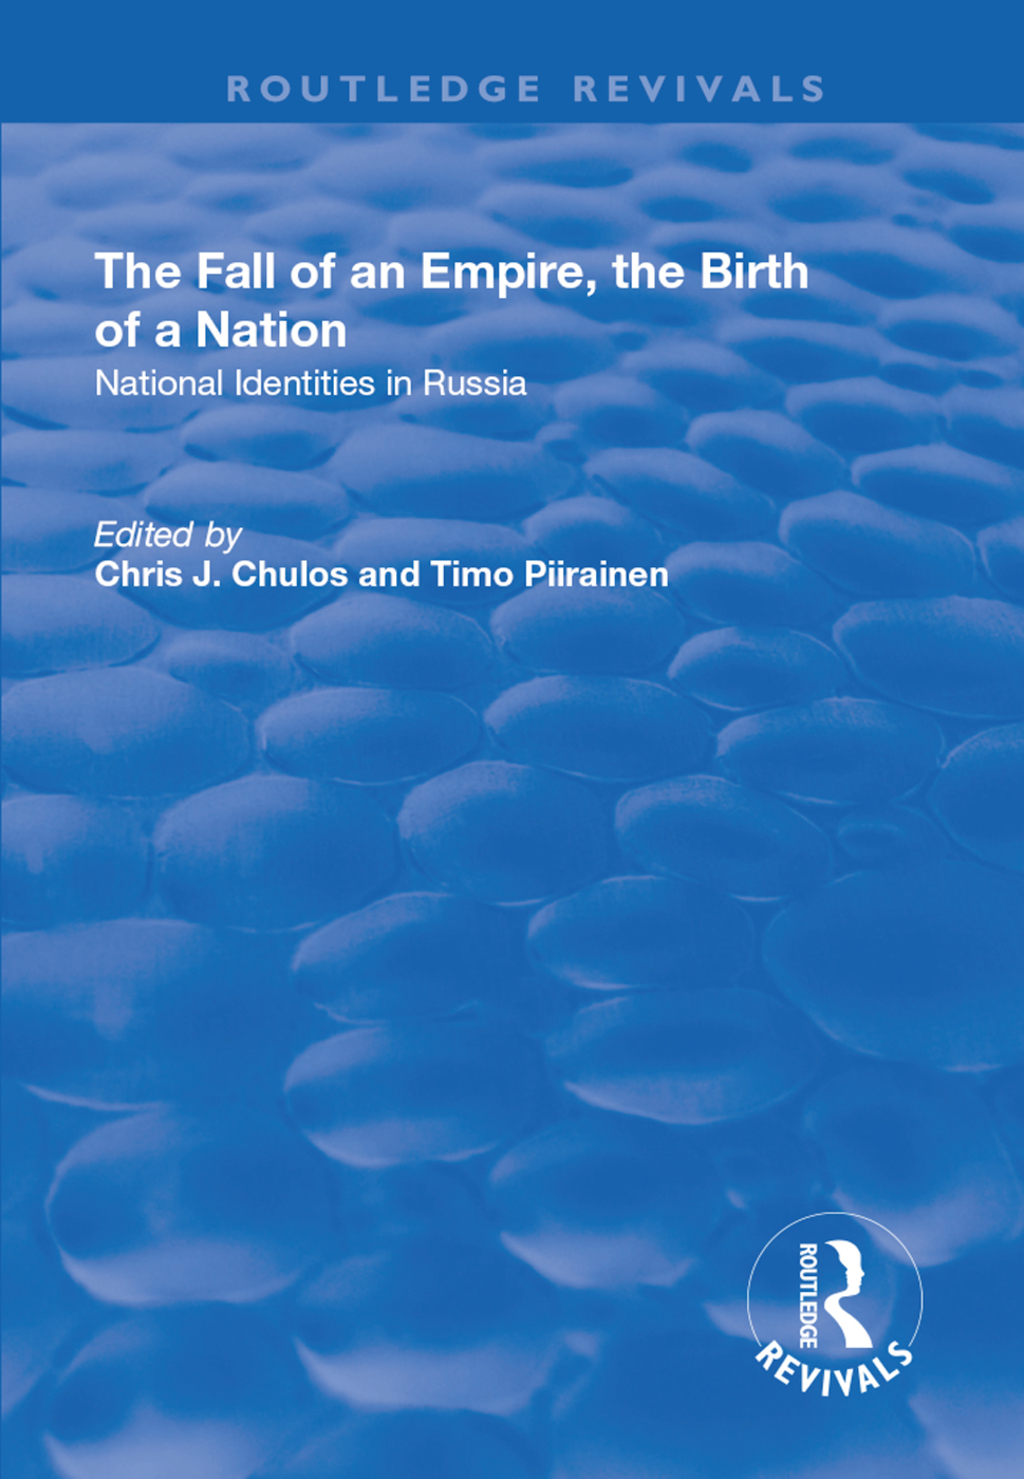 The Fall of an Empire, the Birth of a Nation: National Identities in Russia (ebook) eBooks